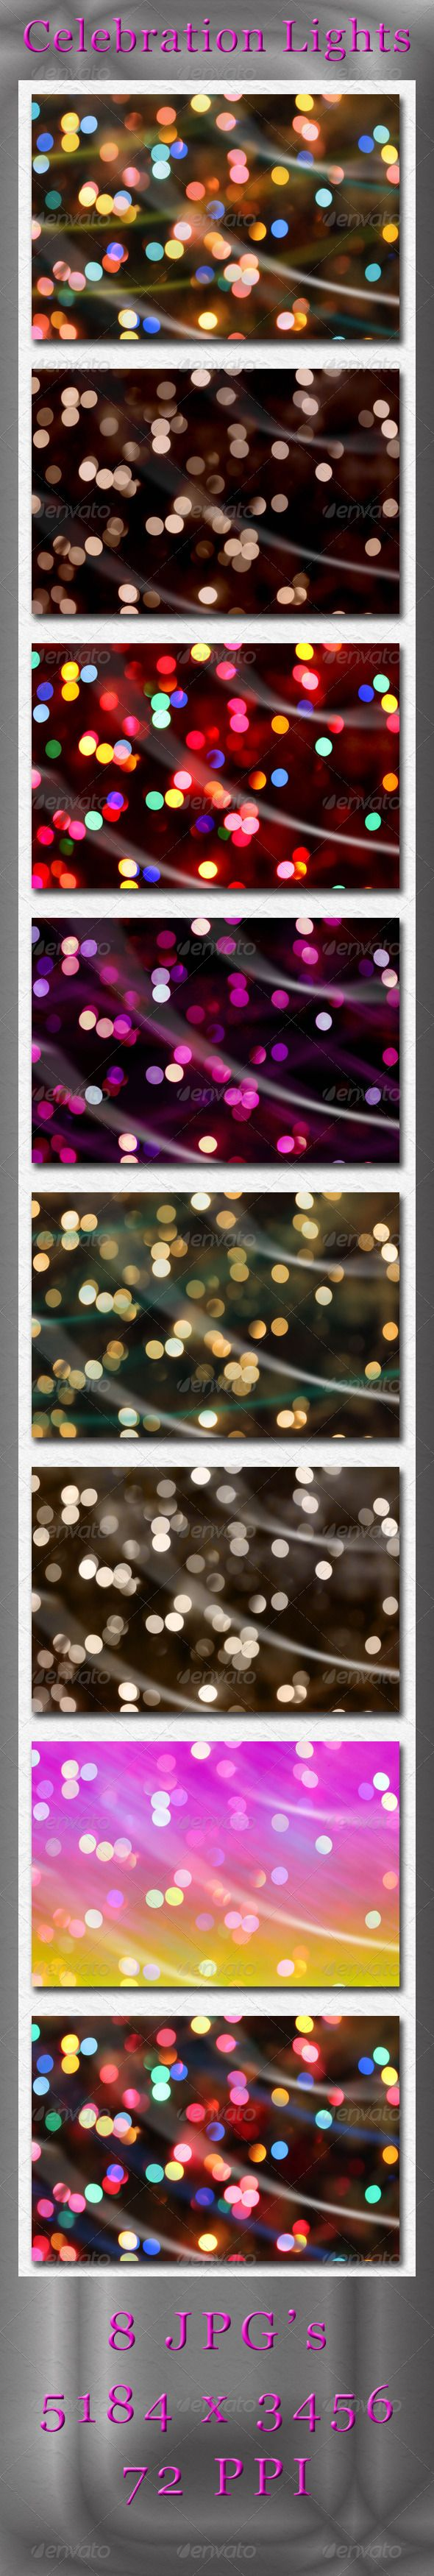 Celebration Lights  #GraphicRiver         8 JPG's Celebration Bokeh Light Abstracts   All JPG's are 5184×3456 / 72 ppi     Created: 6March13 GraphicsFilesIncluded: JPGImage HighResolution: Yes Layered: No MinimumAdobeCSVersion: CS PixelDimensions: 5184x3456 Tags: backdrop #backgrounds #blue #blurred #bokeh #bright #celebrate #celebration #celebratory #christmas #colorful #decorative #festive #gold #green #holiday #lighting #lights #nightlights #purple #red #sparkle #sparkles #sparkling